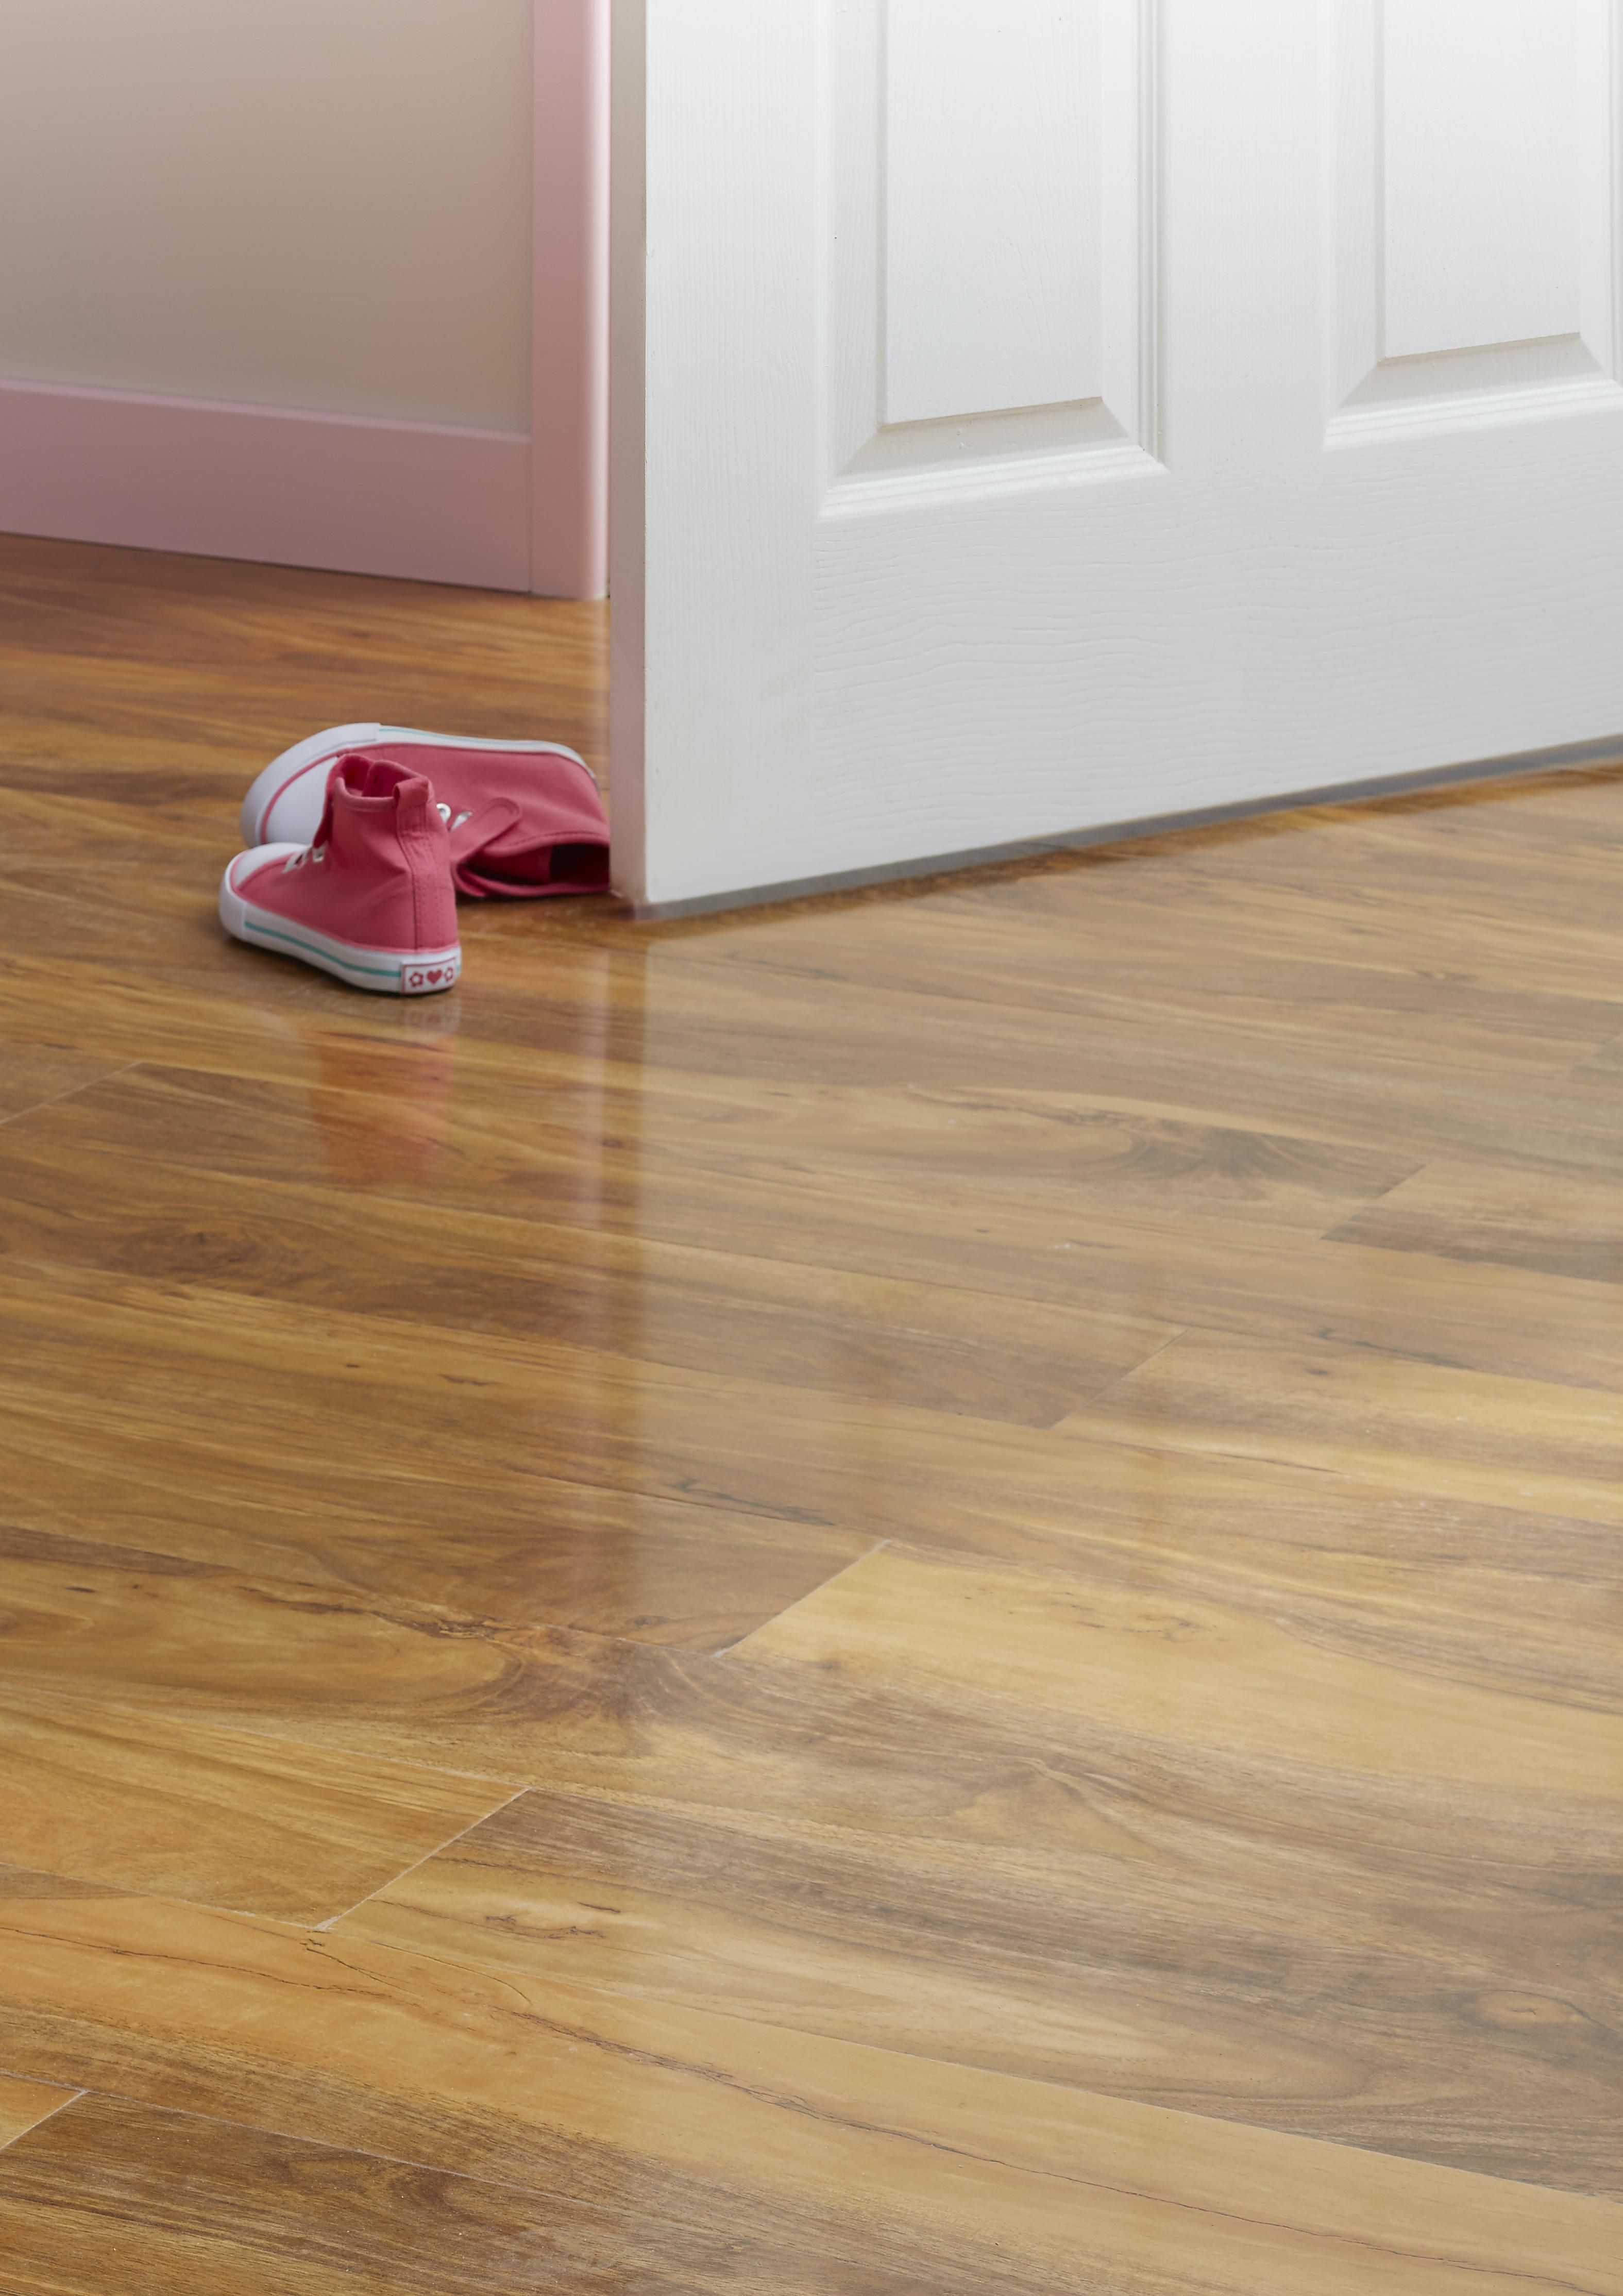 Colours Dolce Walnut Effect Laminate Flooring Is Hardwearing And Ideal For A Kids Bedroom Team With Cosy Rug To Keep Feet Warm